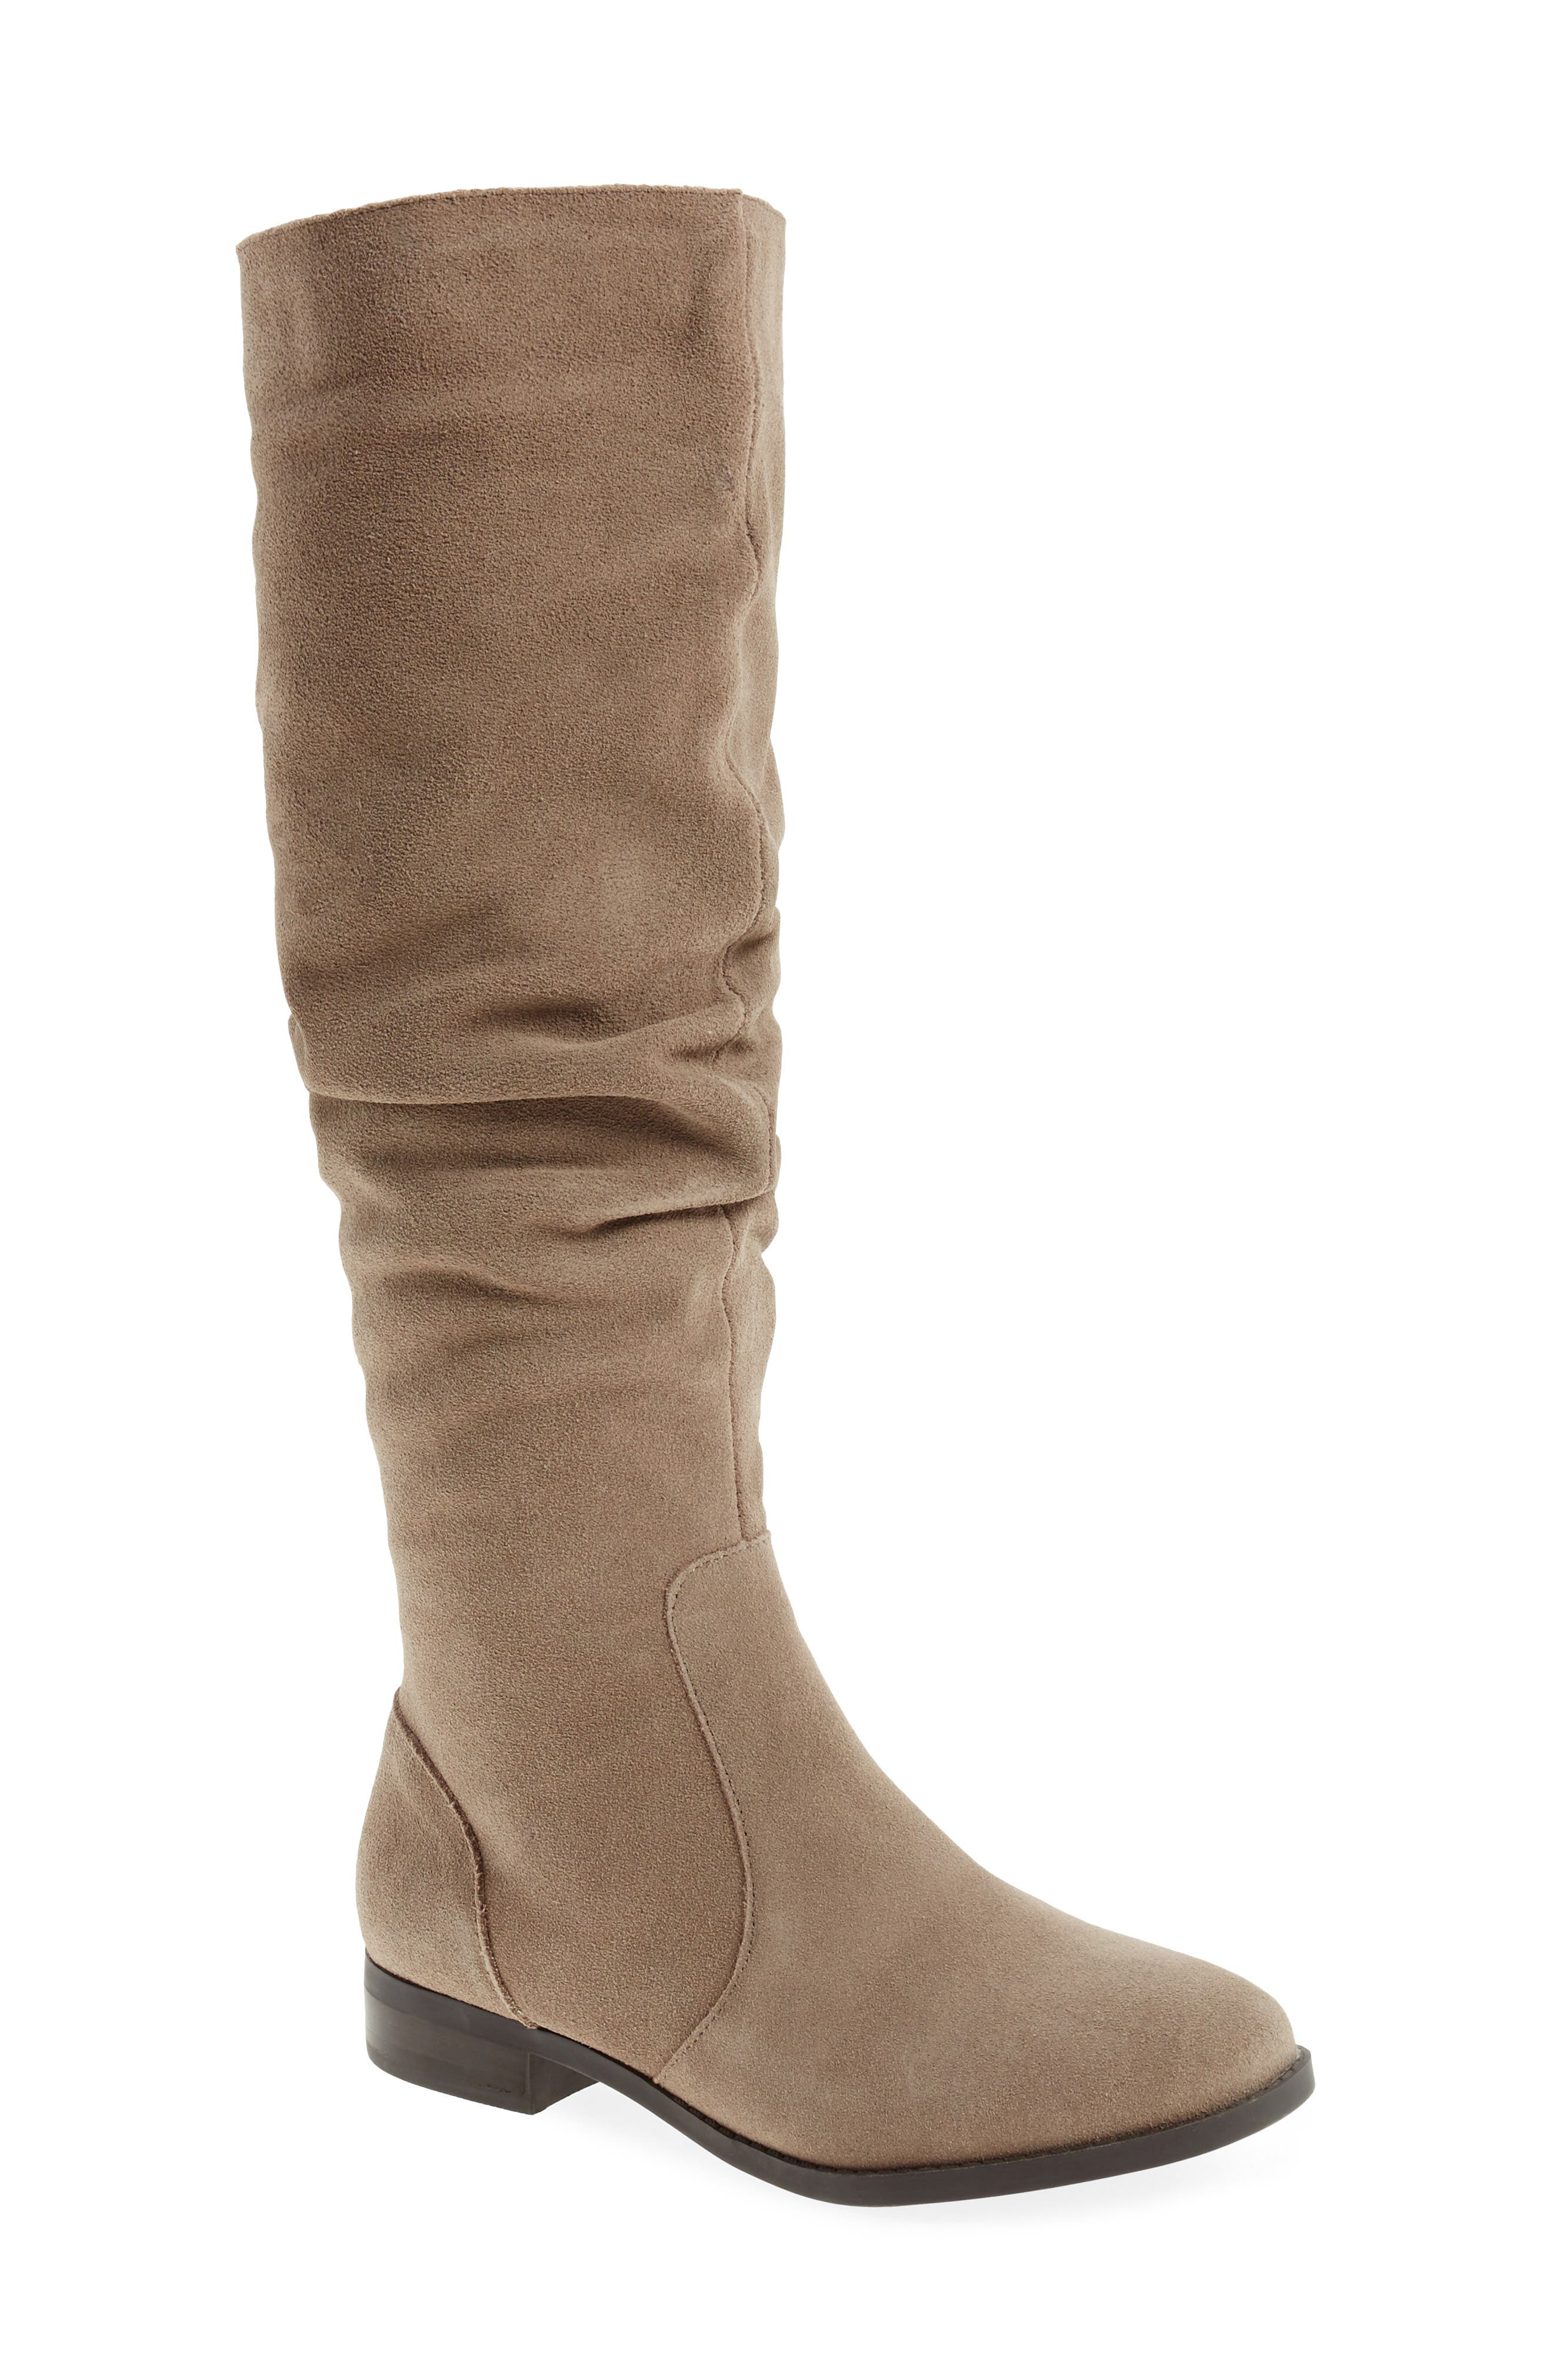 Alternate Image 1 Selected - Steve Maddon Beacon Slouchy Knee-High Boot (Women) (Wide Calf)